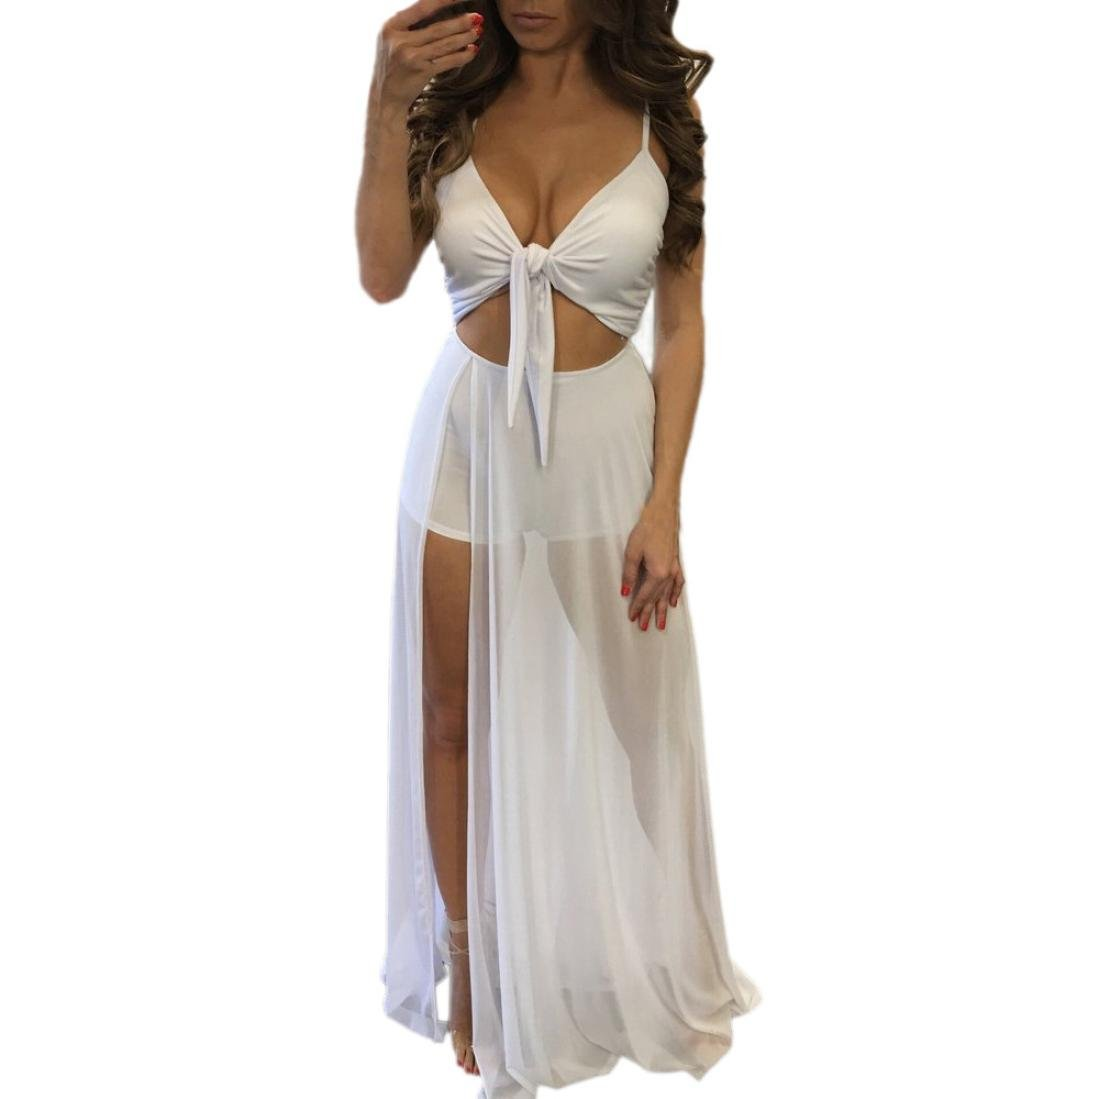 Coohole New Fashion Women's Sexy Jumpsuit Romper Short Trousers Bodycon Playsuit Long Dress (White, L)